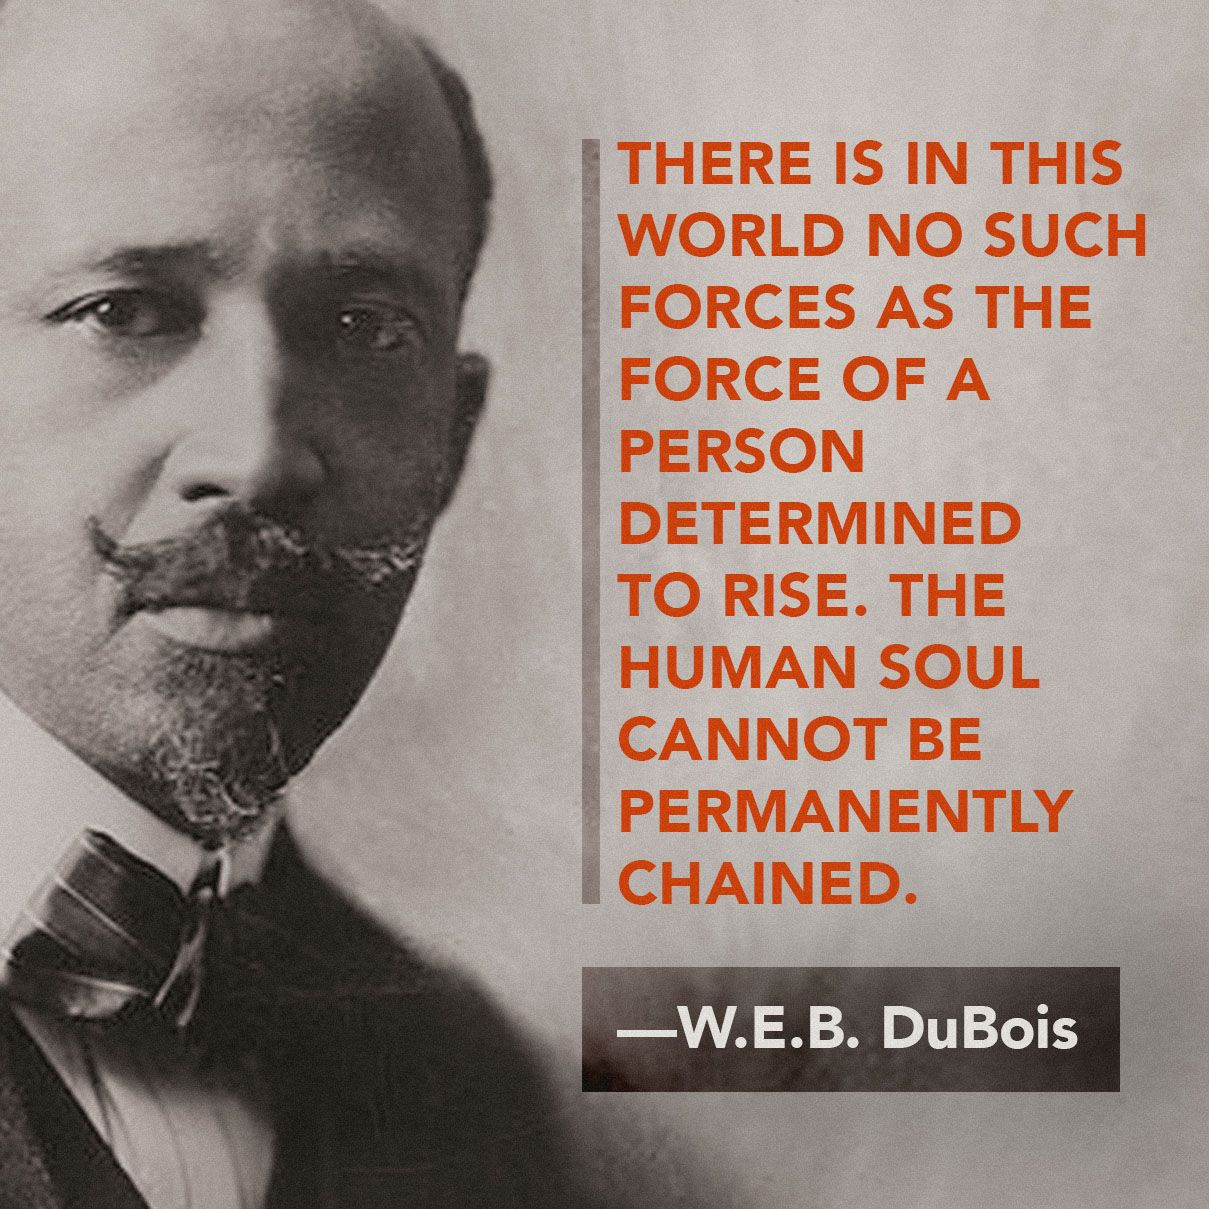 best images about du bois w e b civil rights 17 best images about du bois w e b civil rights activists quotes and 27